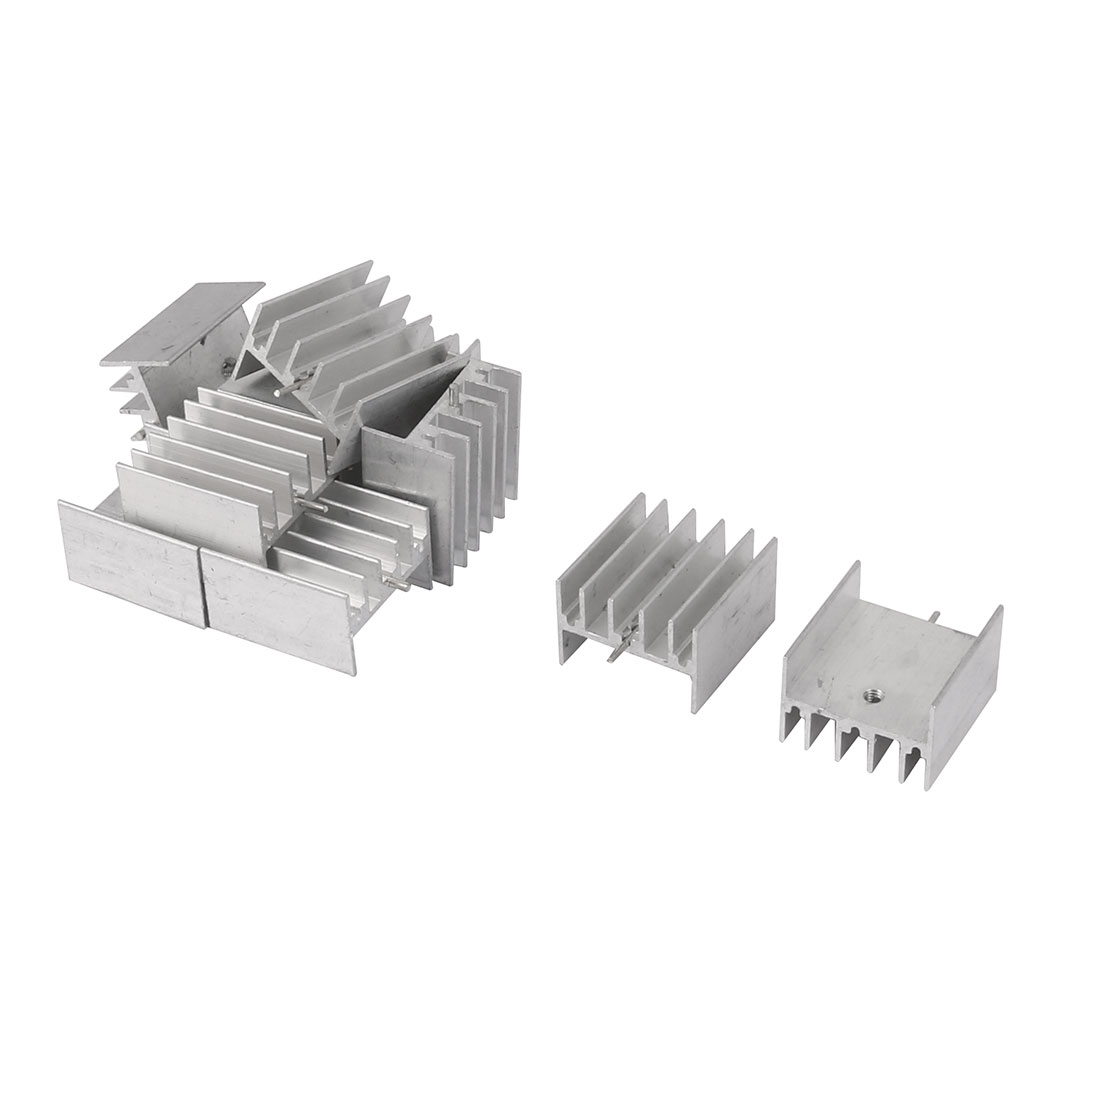 25mm x 24mm x 15mm Silver Tone Aluminium Power Amplifier Heat Sink Radiator Heatsink 10pcs